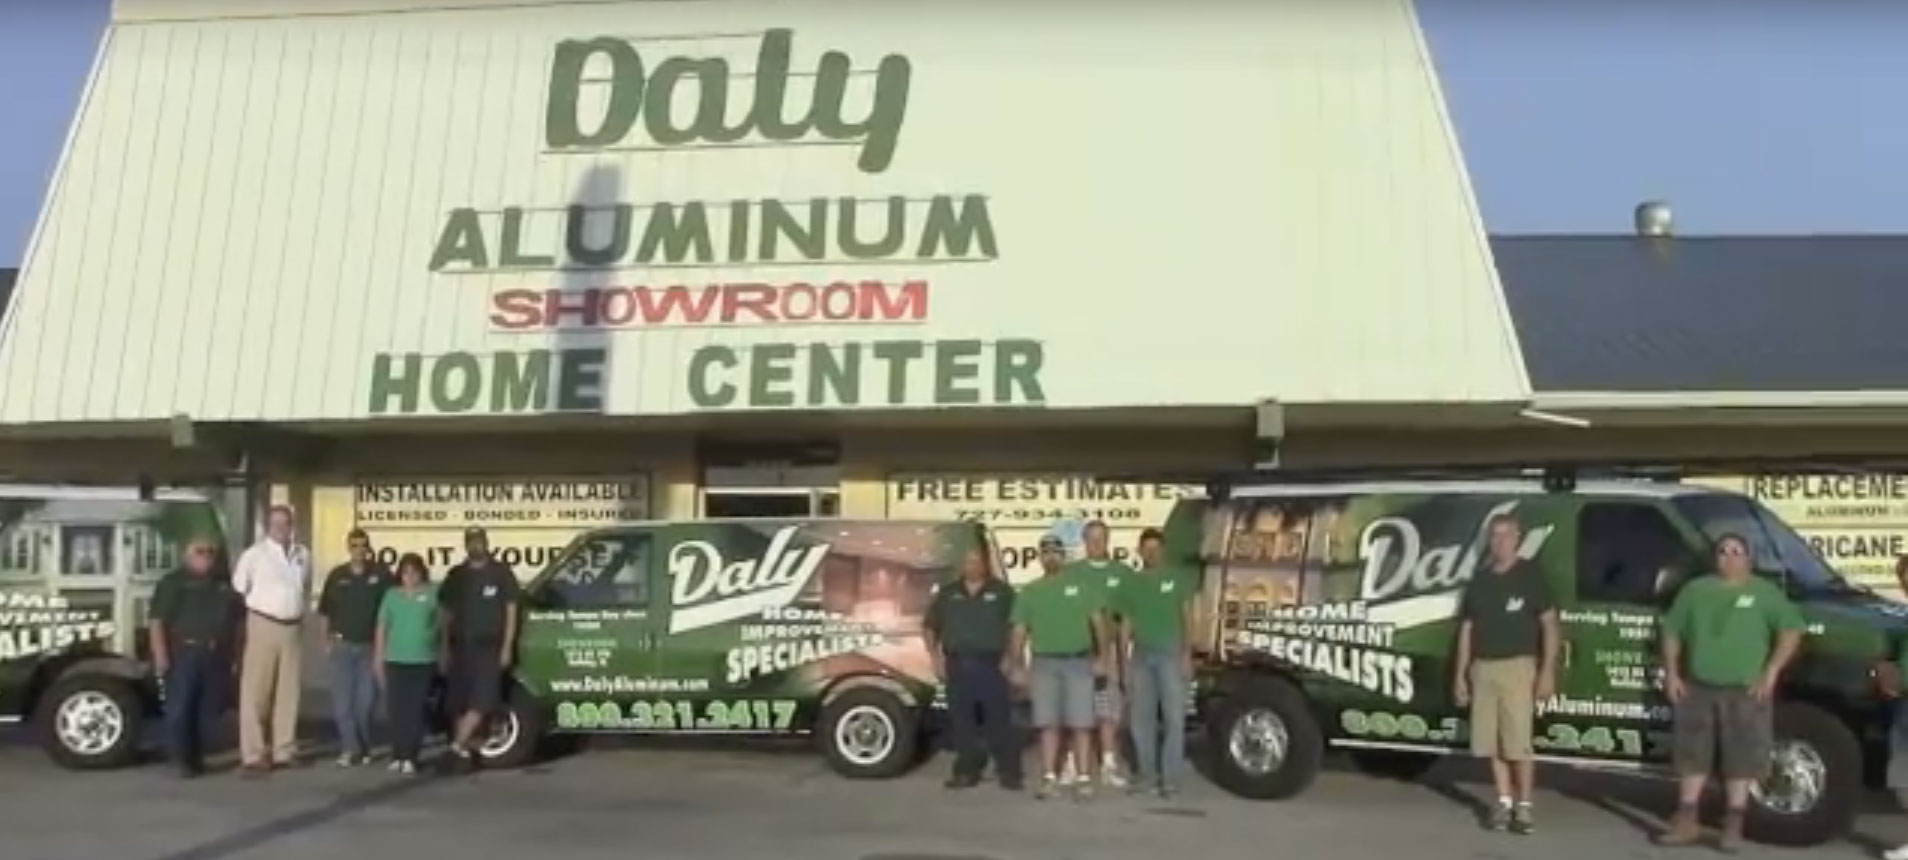 Daly Home Improvement team